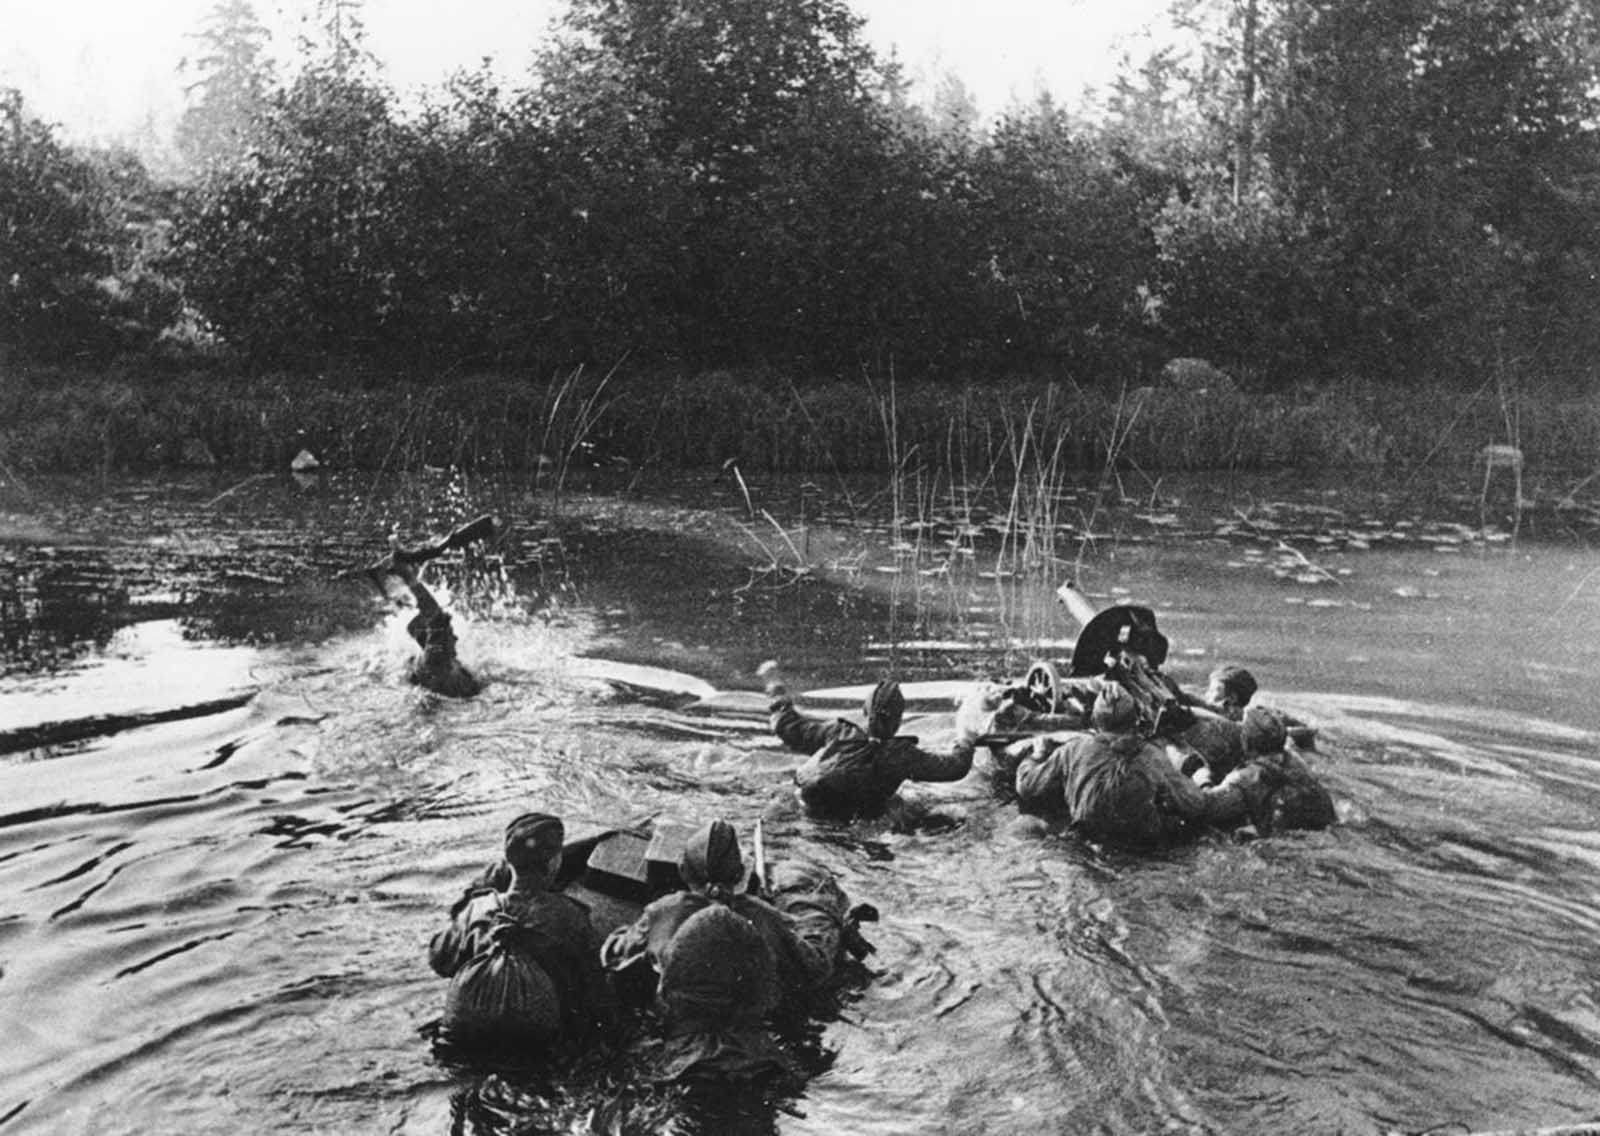 A Soviet machine gun crew crosses a river along the second Baltic front, in January of 1945. The soldier on the left is holding his rifle overhead while his comrades push a floating device with the a Maxim machine gun, followed by two men with several supply boxes.